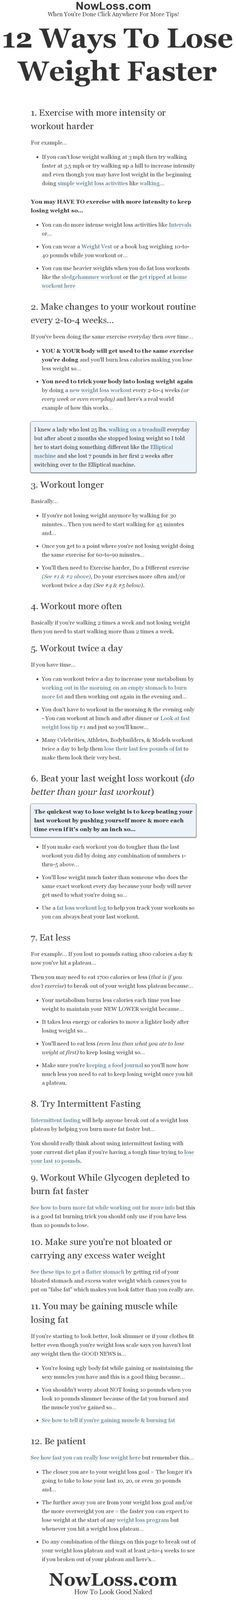 Blogilates fat burning workout photo 6